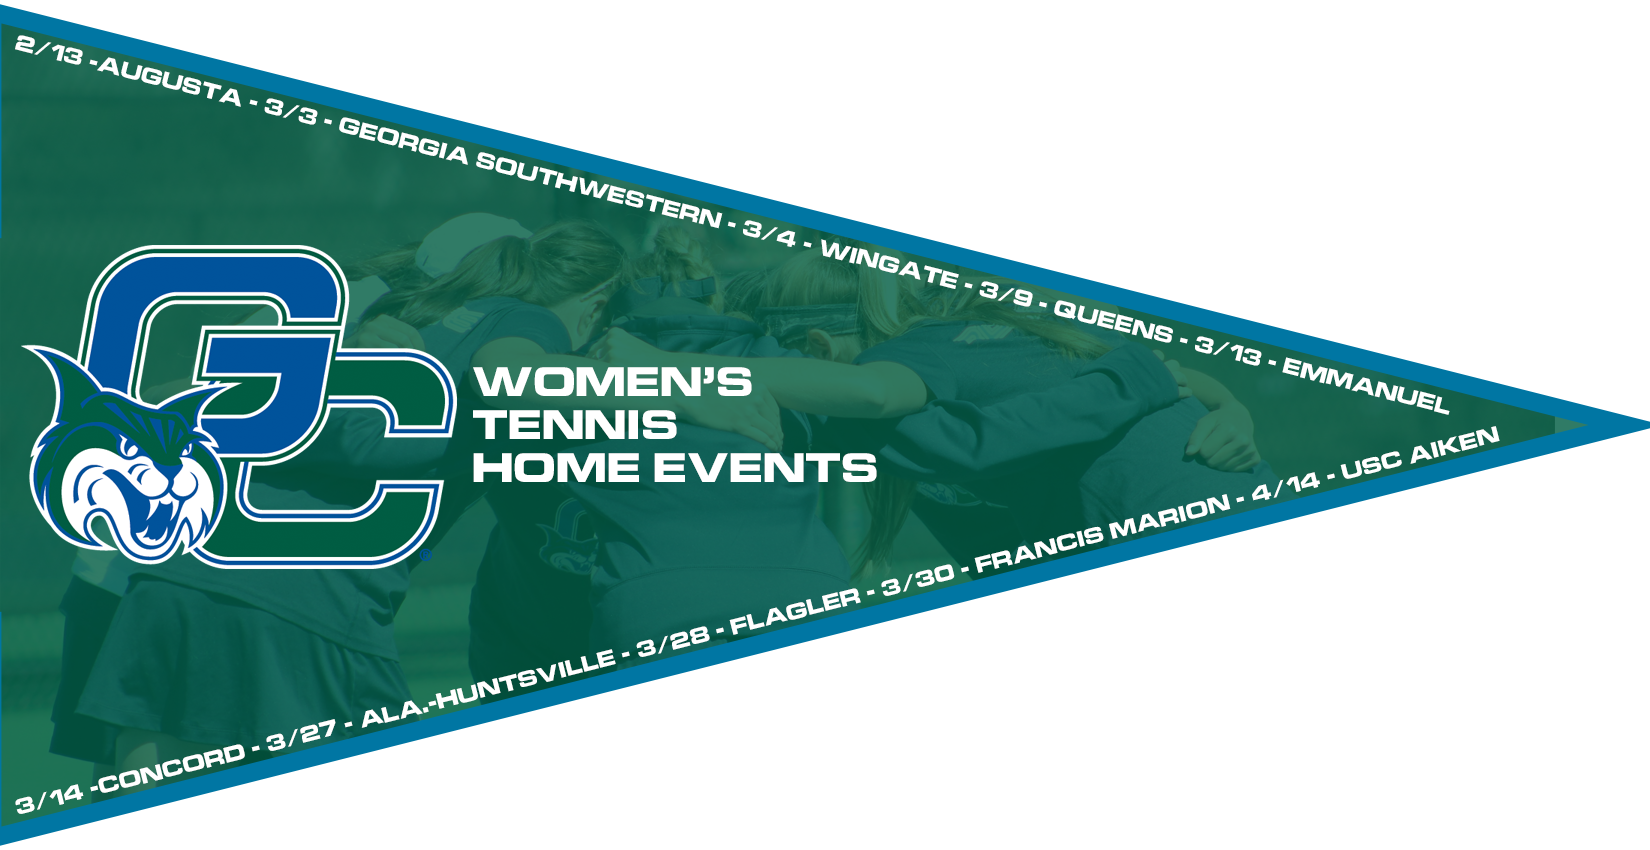 A list of the home events for Bobcat Women's Tennis this spring.